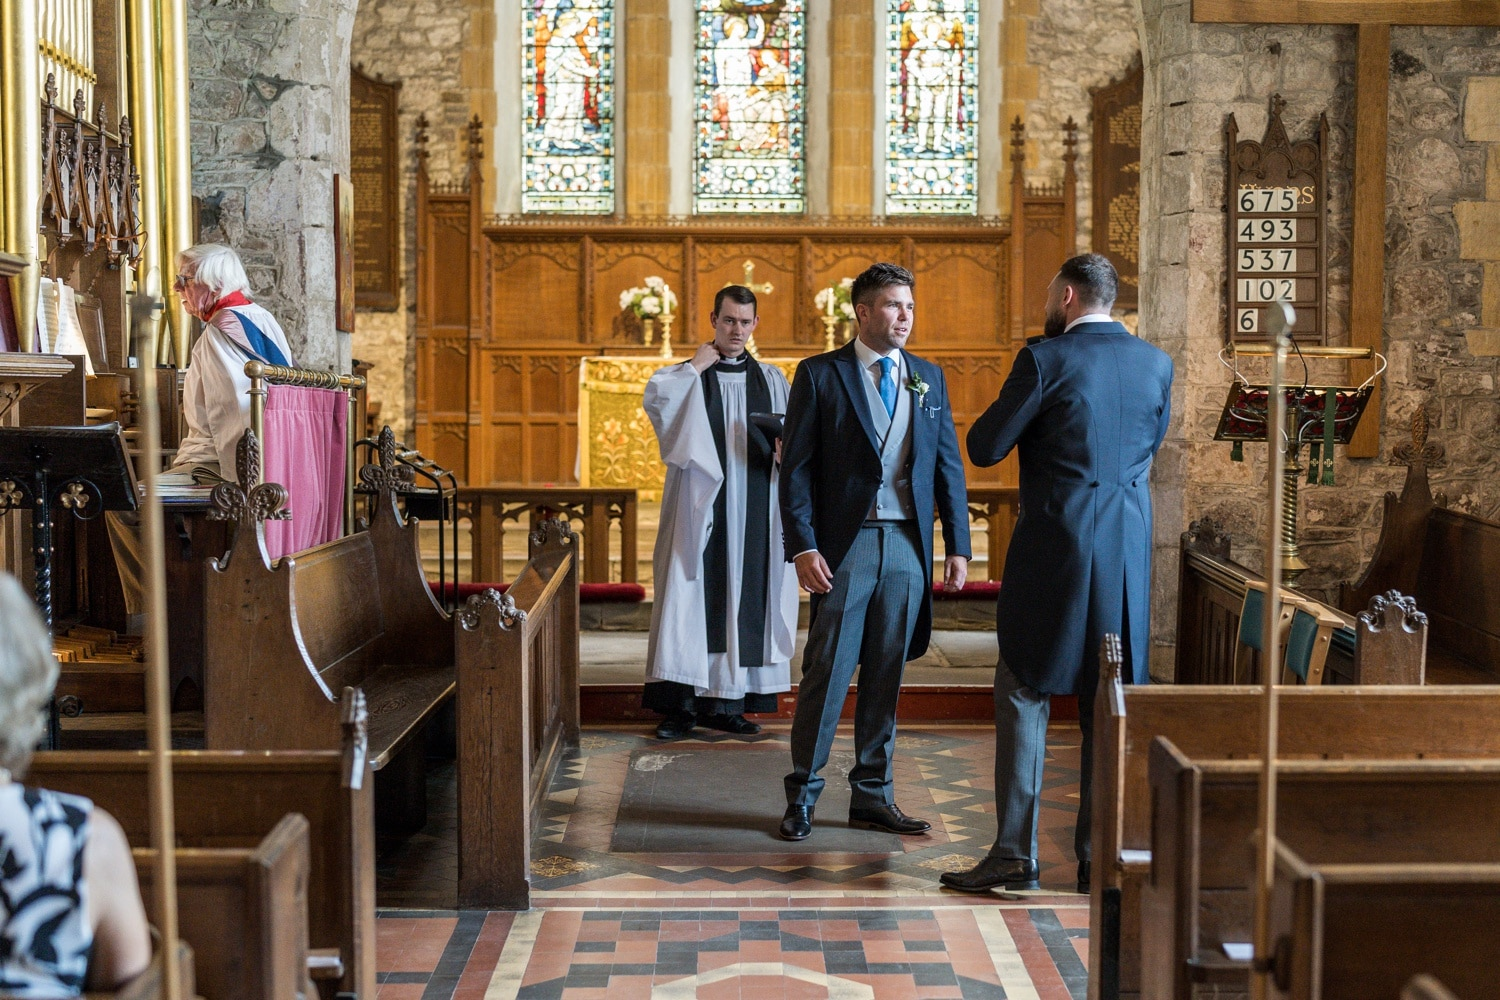 Groom with best man and vicar wait at church alter